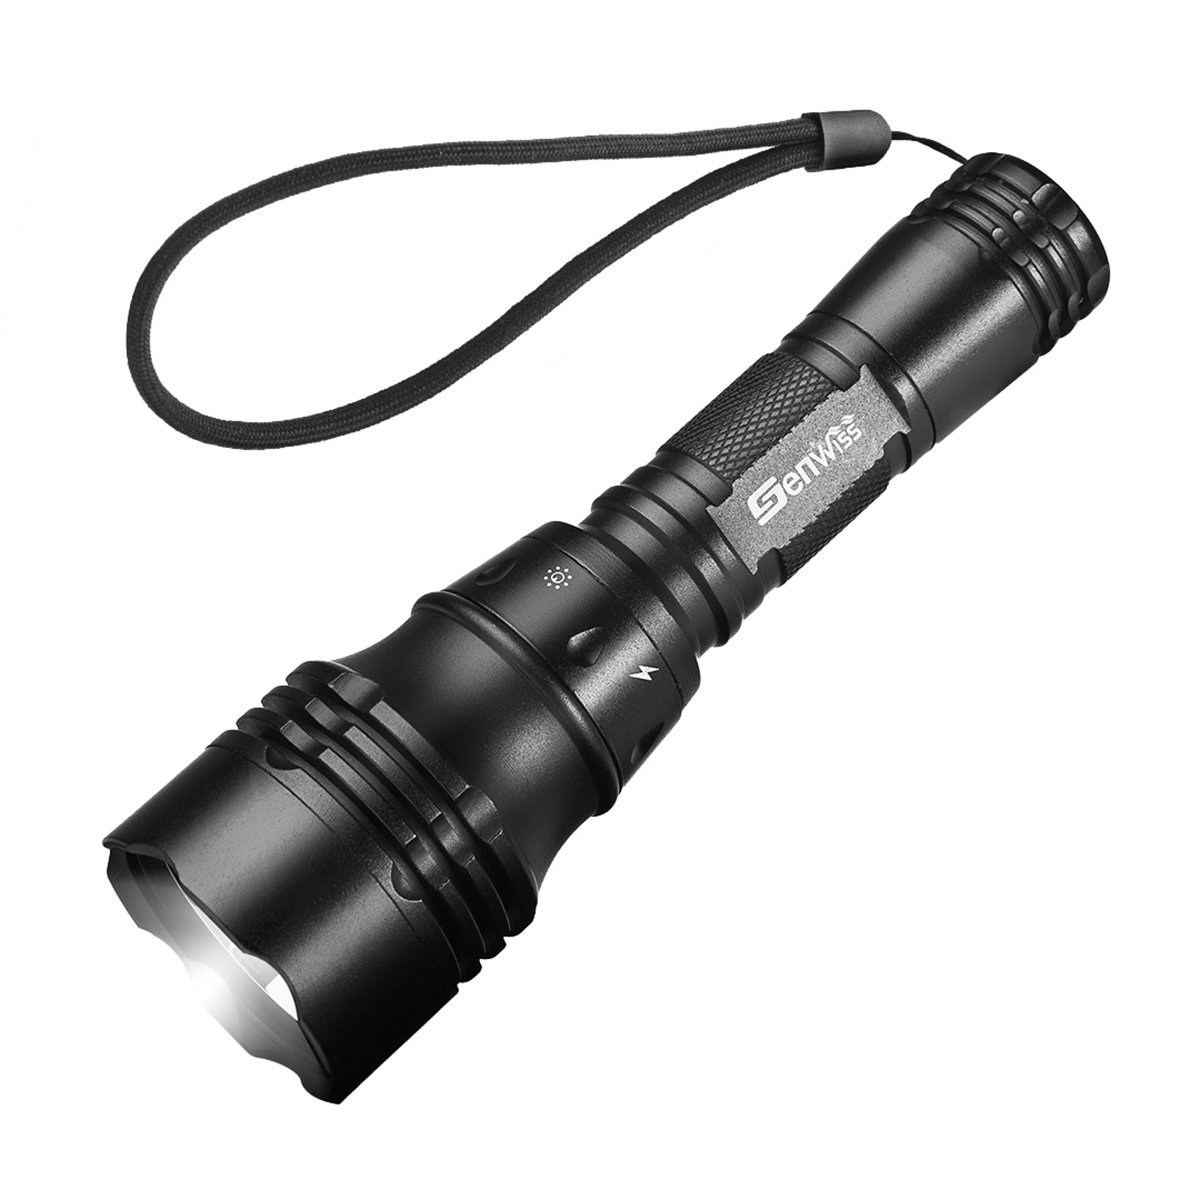 3000 Lumens Super Bright XML- L2 LED Underwater Diving Flashlight Torch Light Lamp Waterproof Super T6 3000torch-01